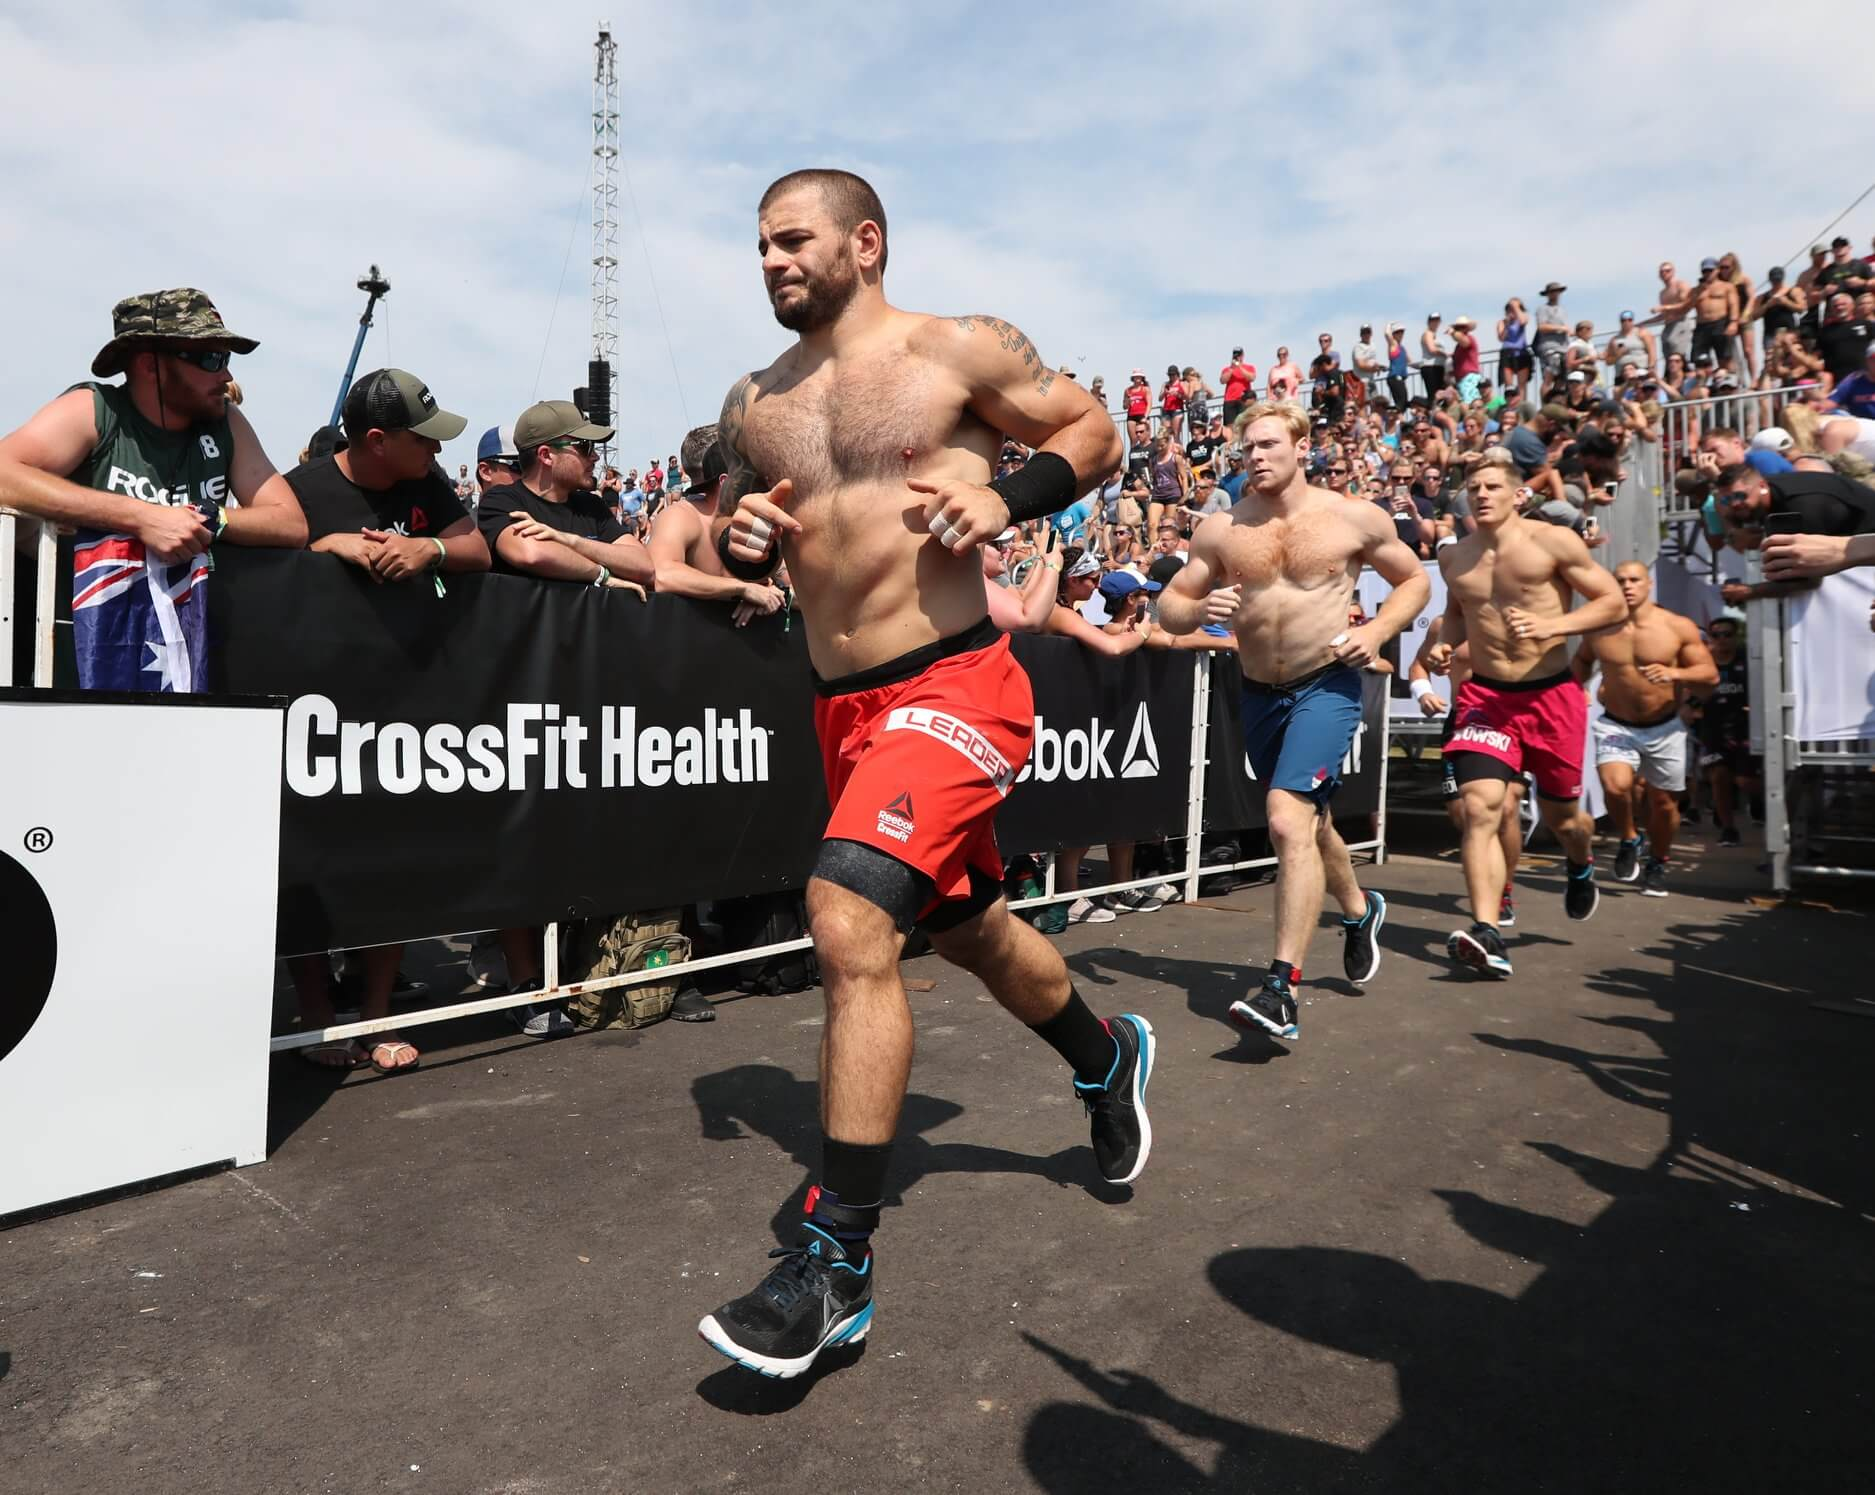 mens running through a crowd during the CrossFit Games